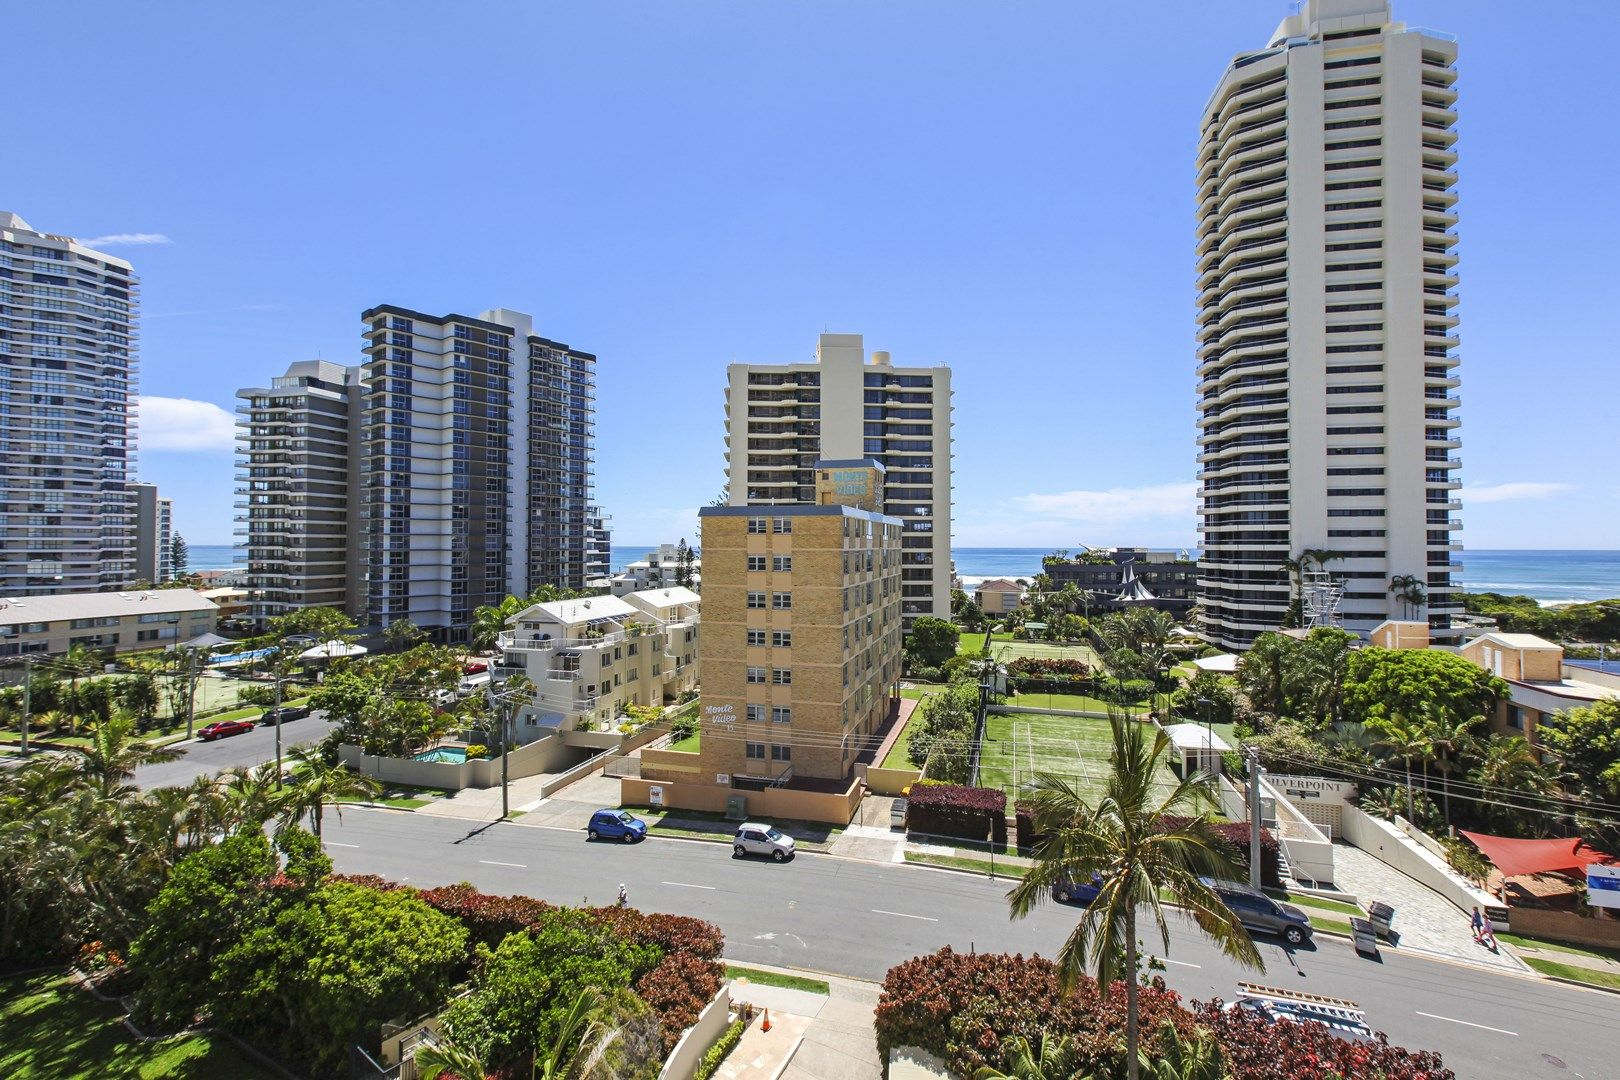 73/1 Serisier Avenue, Main Beach QLD 4217, Image 0